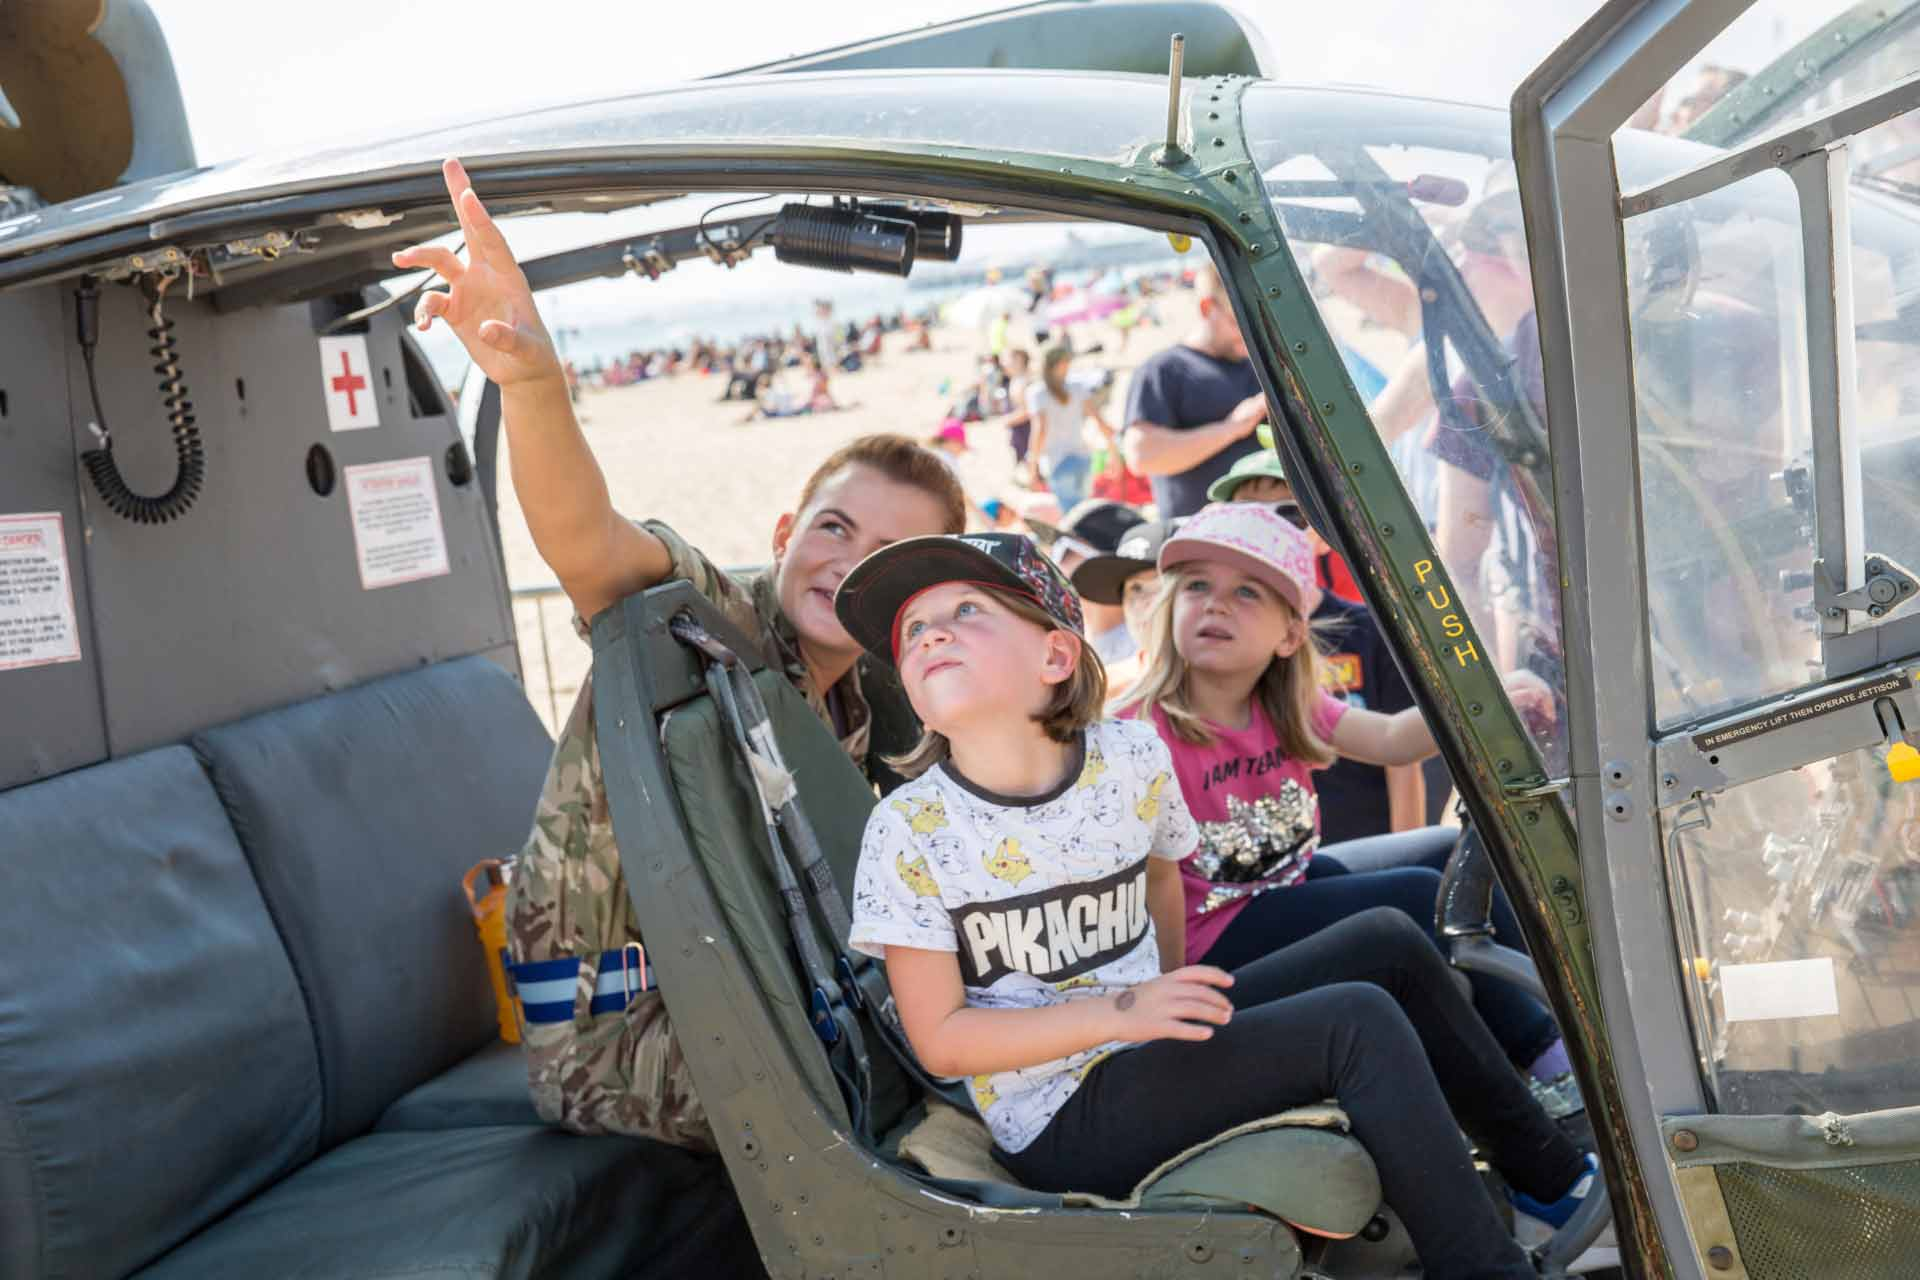 Two young girls being shown around a helicopter by a solider